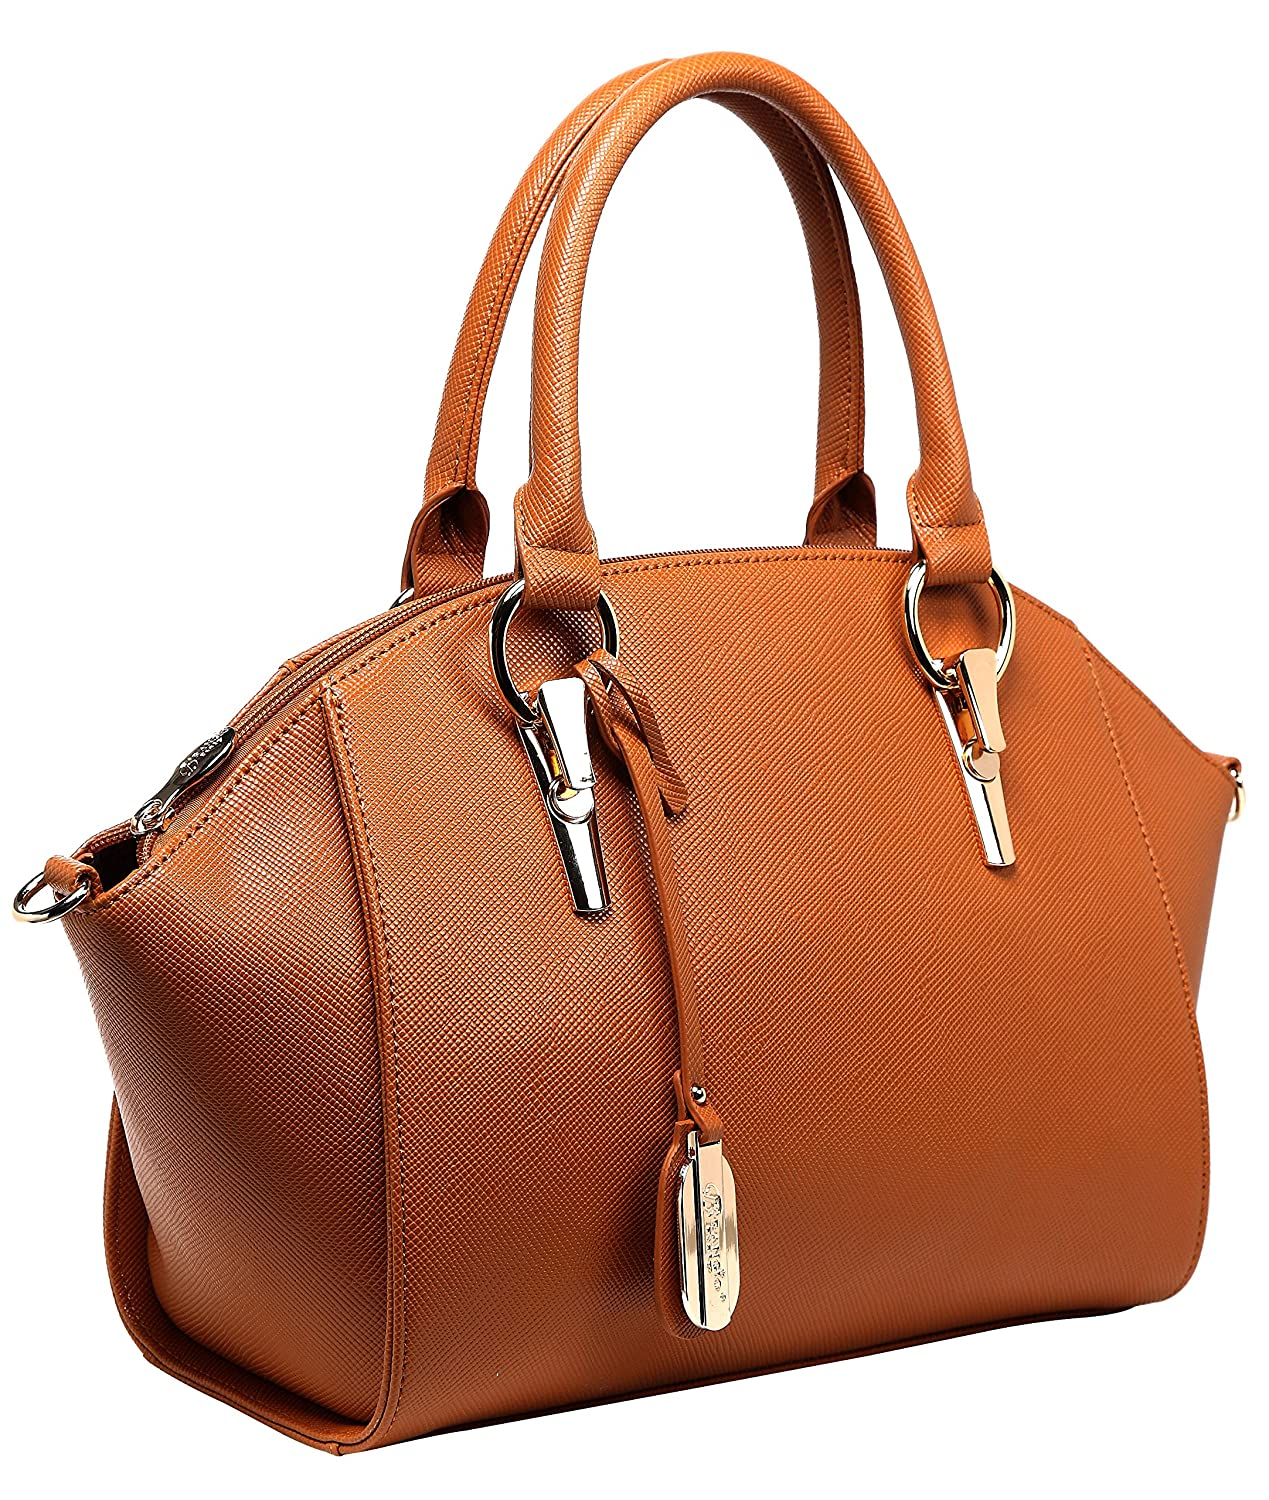 Authentic BRANGIO (Italy) Dome Shaped Satchel-Style Handbag with Adjustable Shoulder Strap